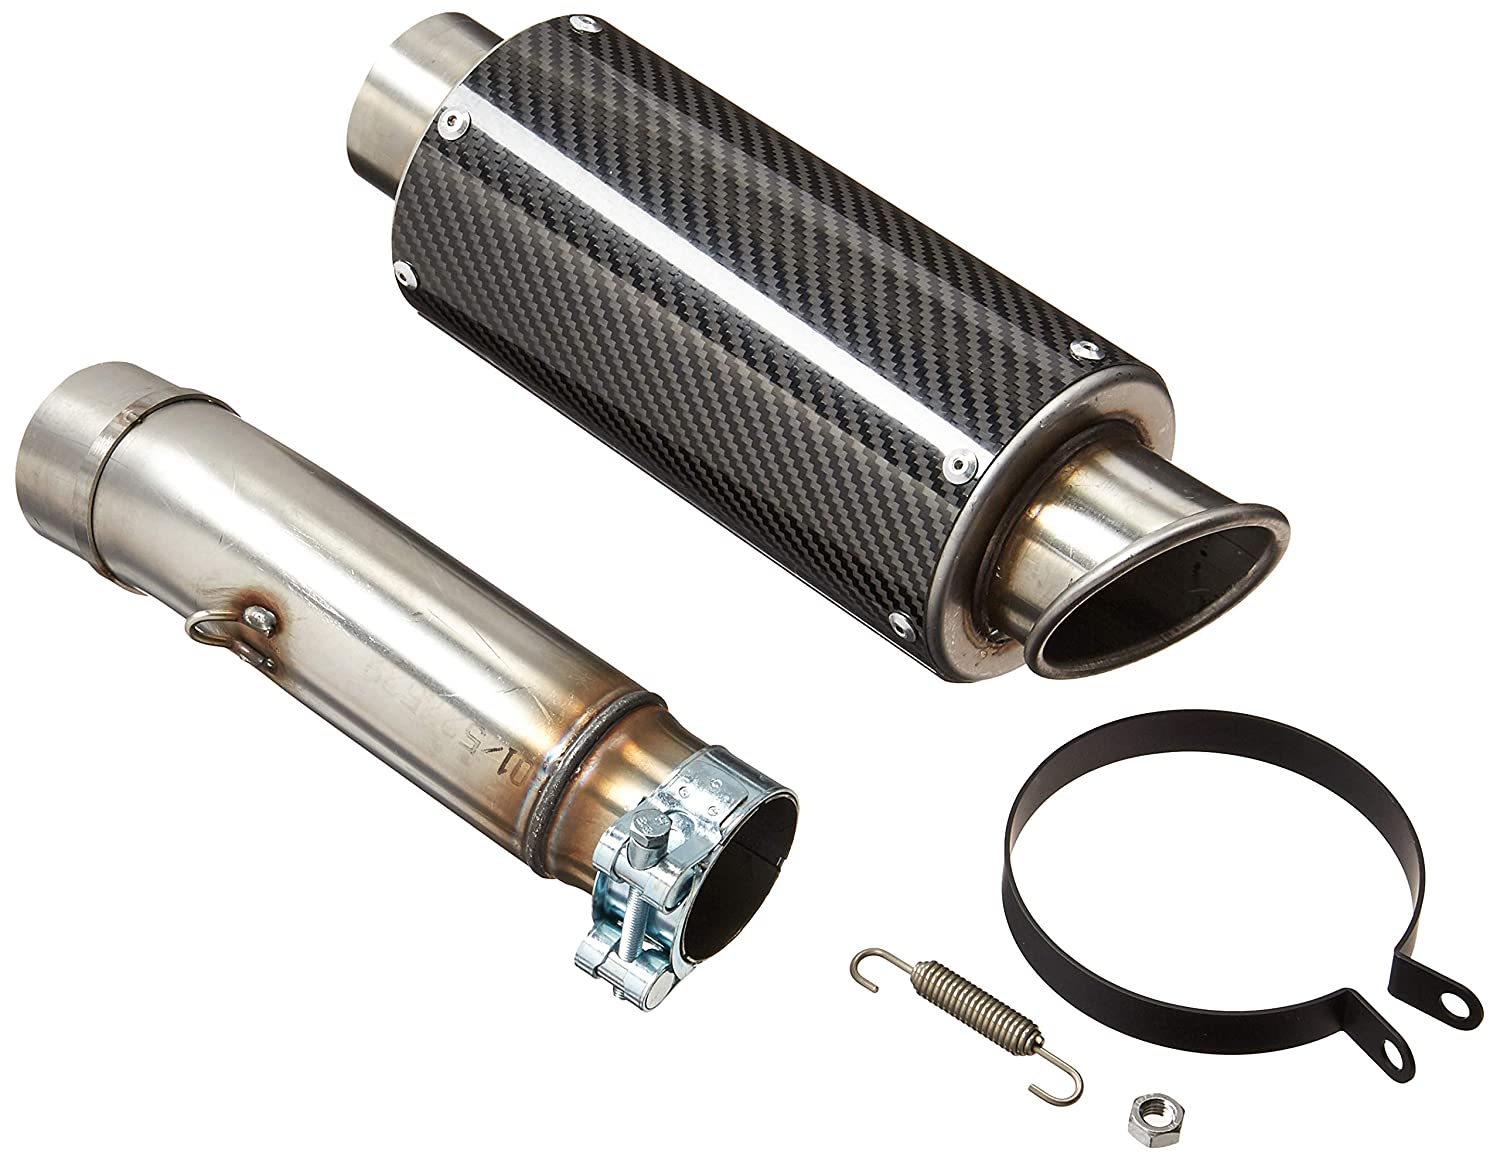 Hotbodies Racing 60801-2400 Carbon Fiber Slip-On MGP Exhaust Canister